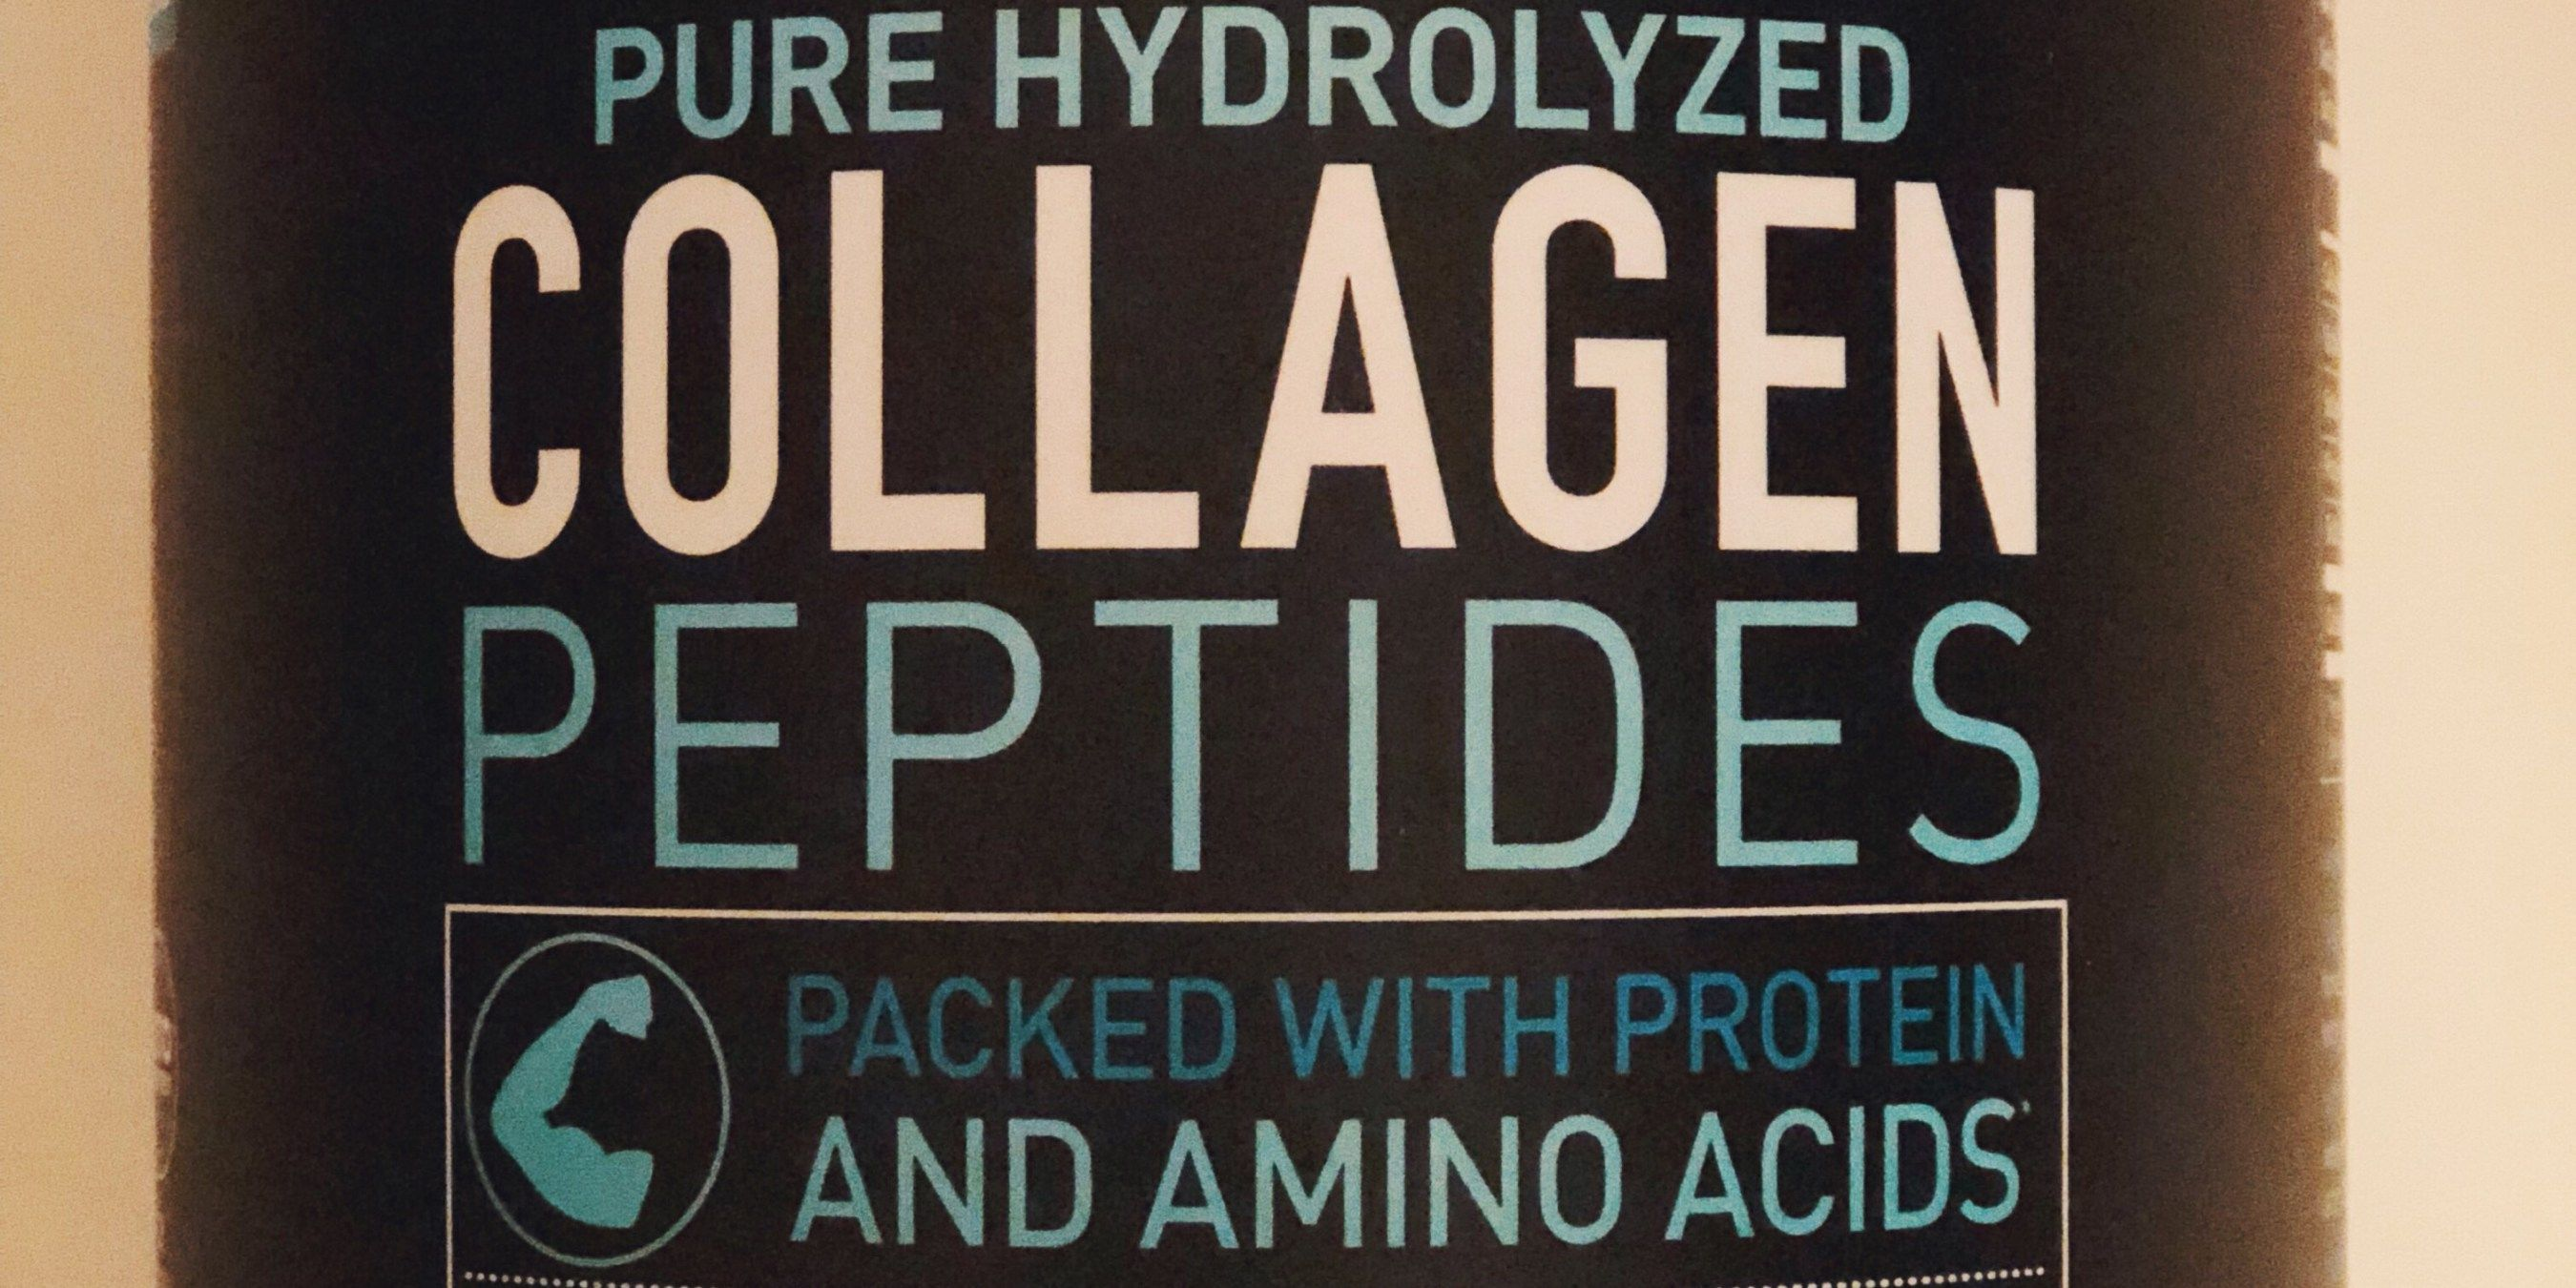 Collagen Peptides Review Collagen peptides, Peptides